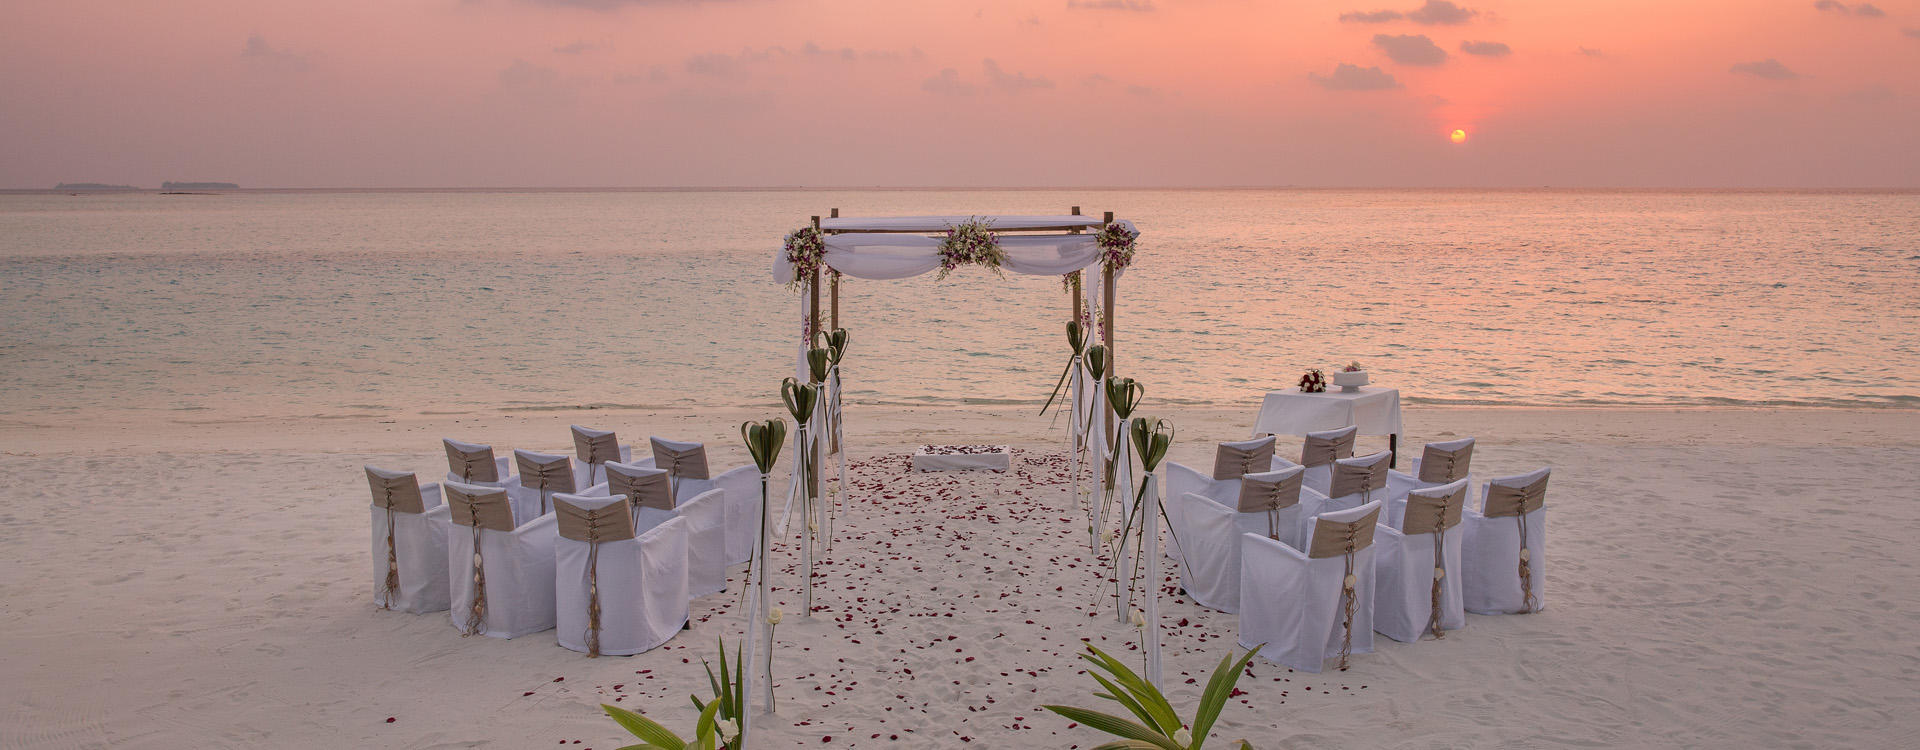 AMD_Destination_Wedding_1920x750